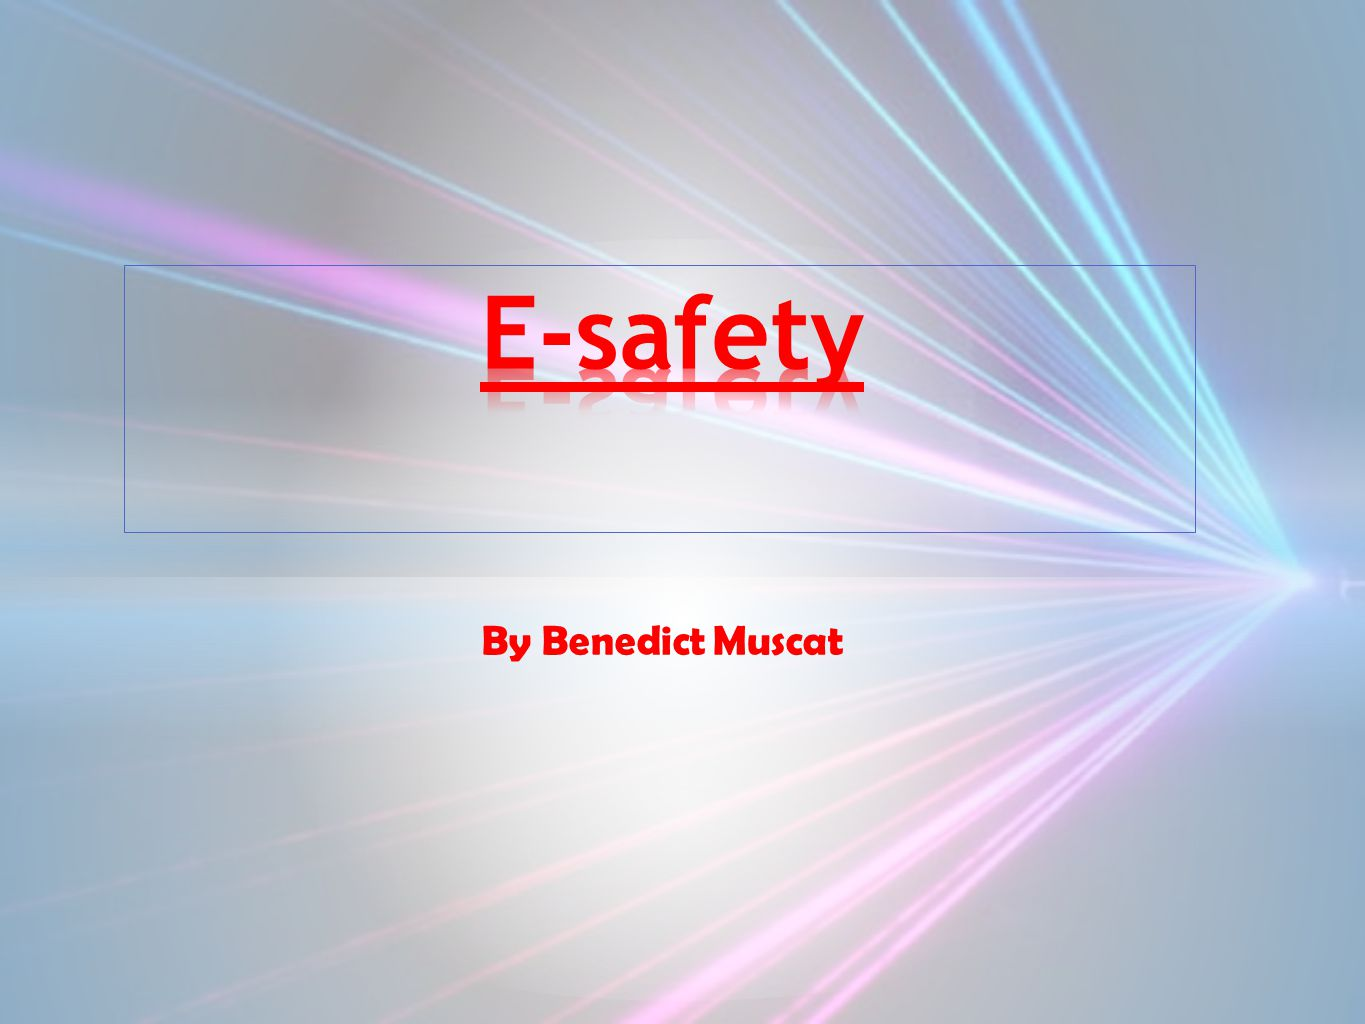 E-safety By Benedict Muscat